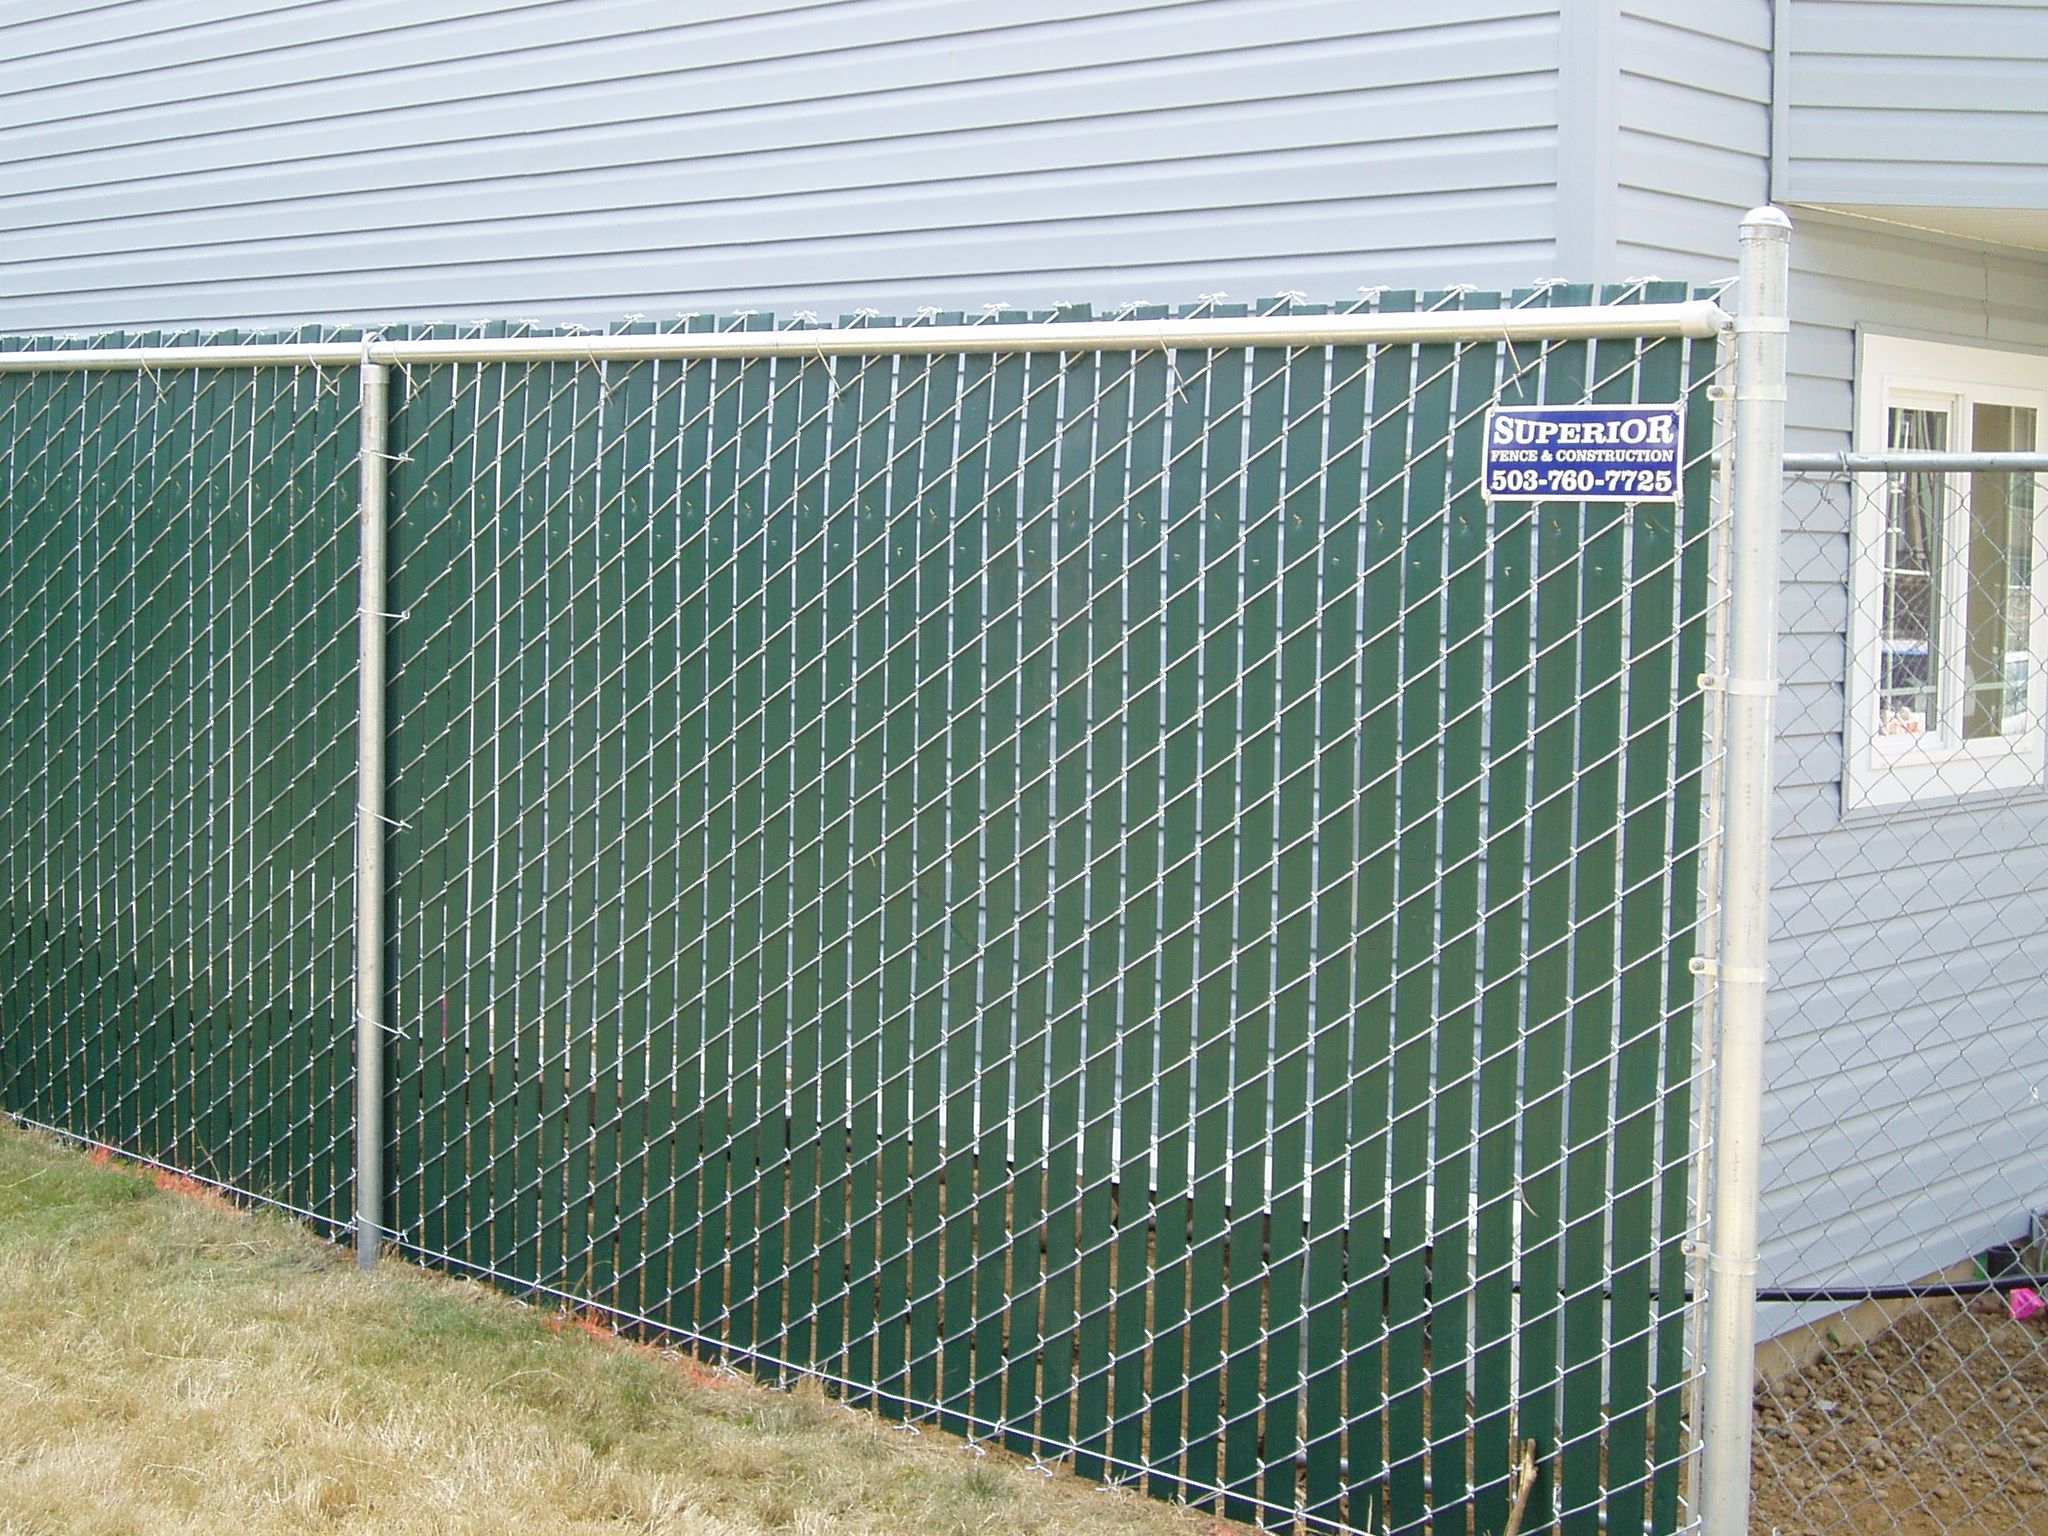 Green Slatted Chain Link Fence Slats Add Privacy To Your Chain